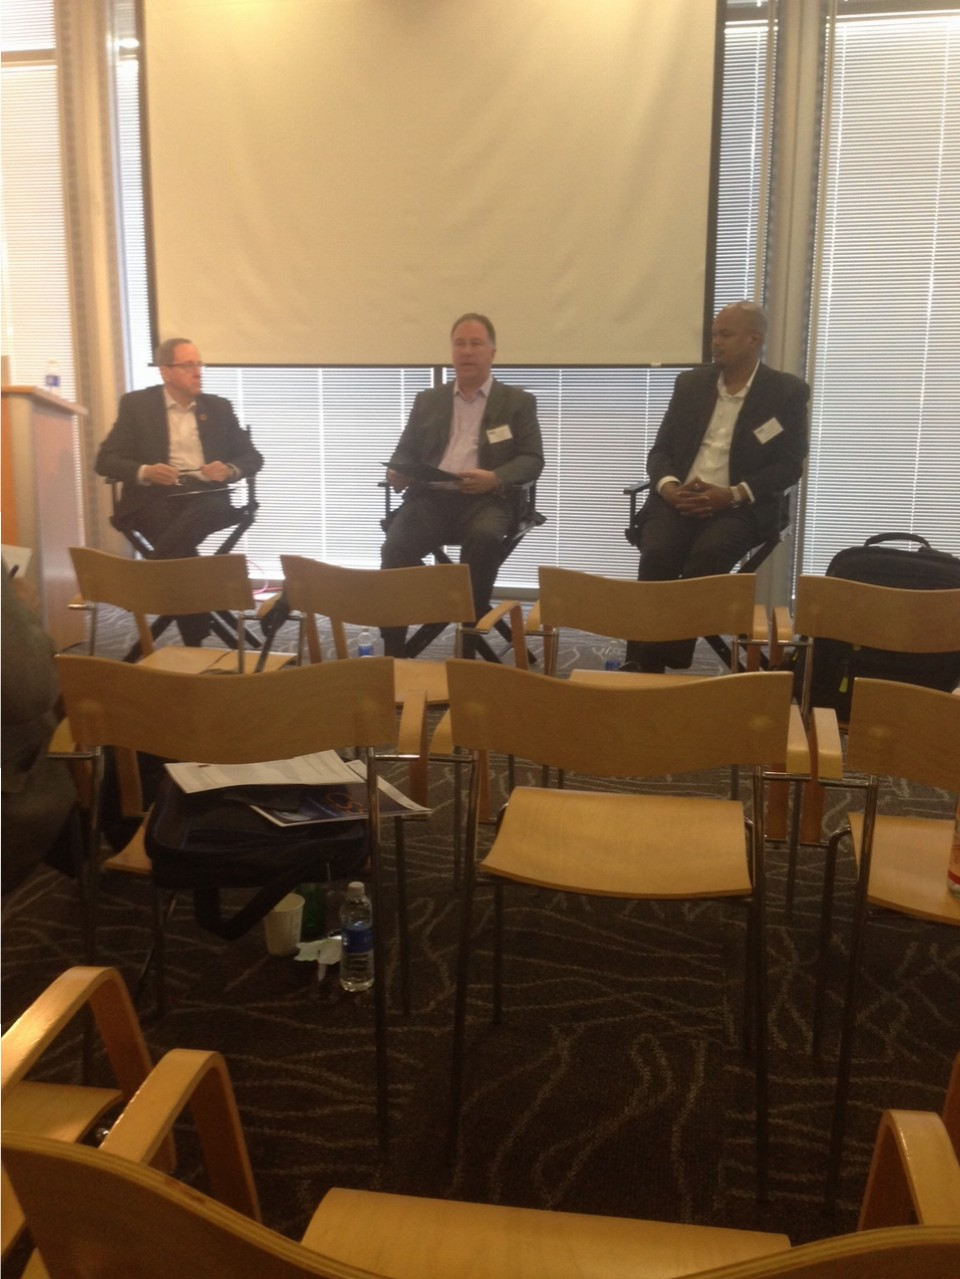 The CISOs panel from left to right, David Finn (Symantec), Tom August (John Muir Health), and Auston Davis (Stanford Children's Health).